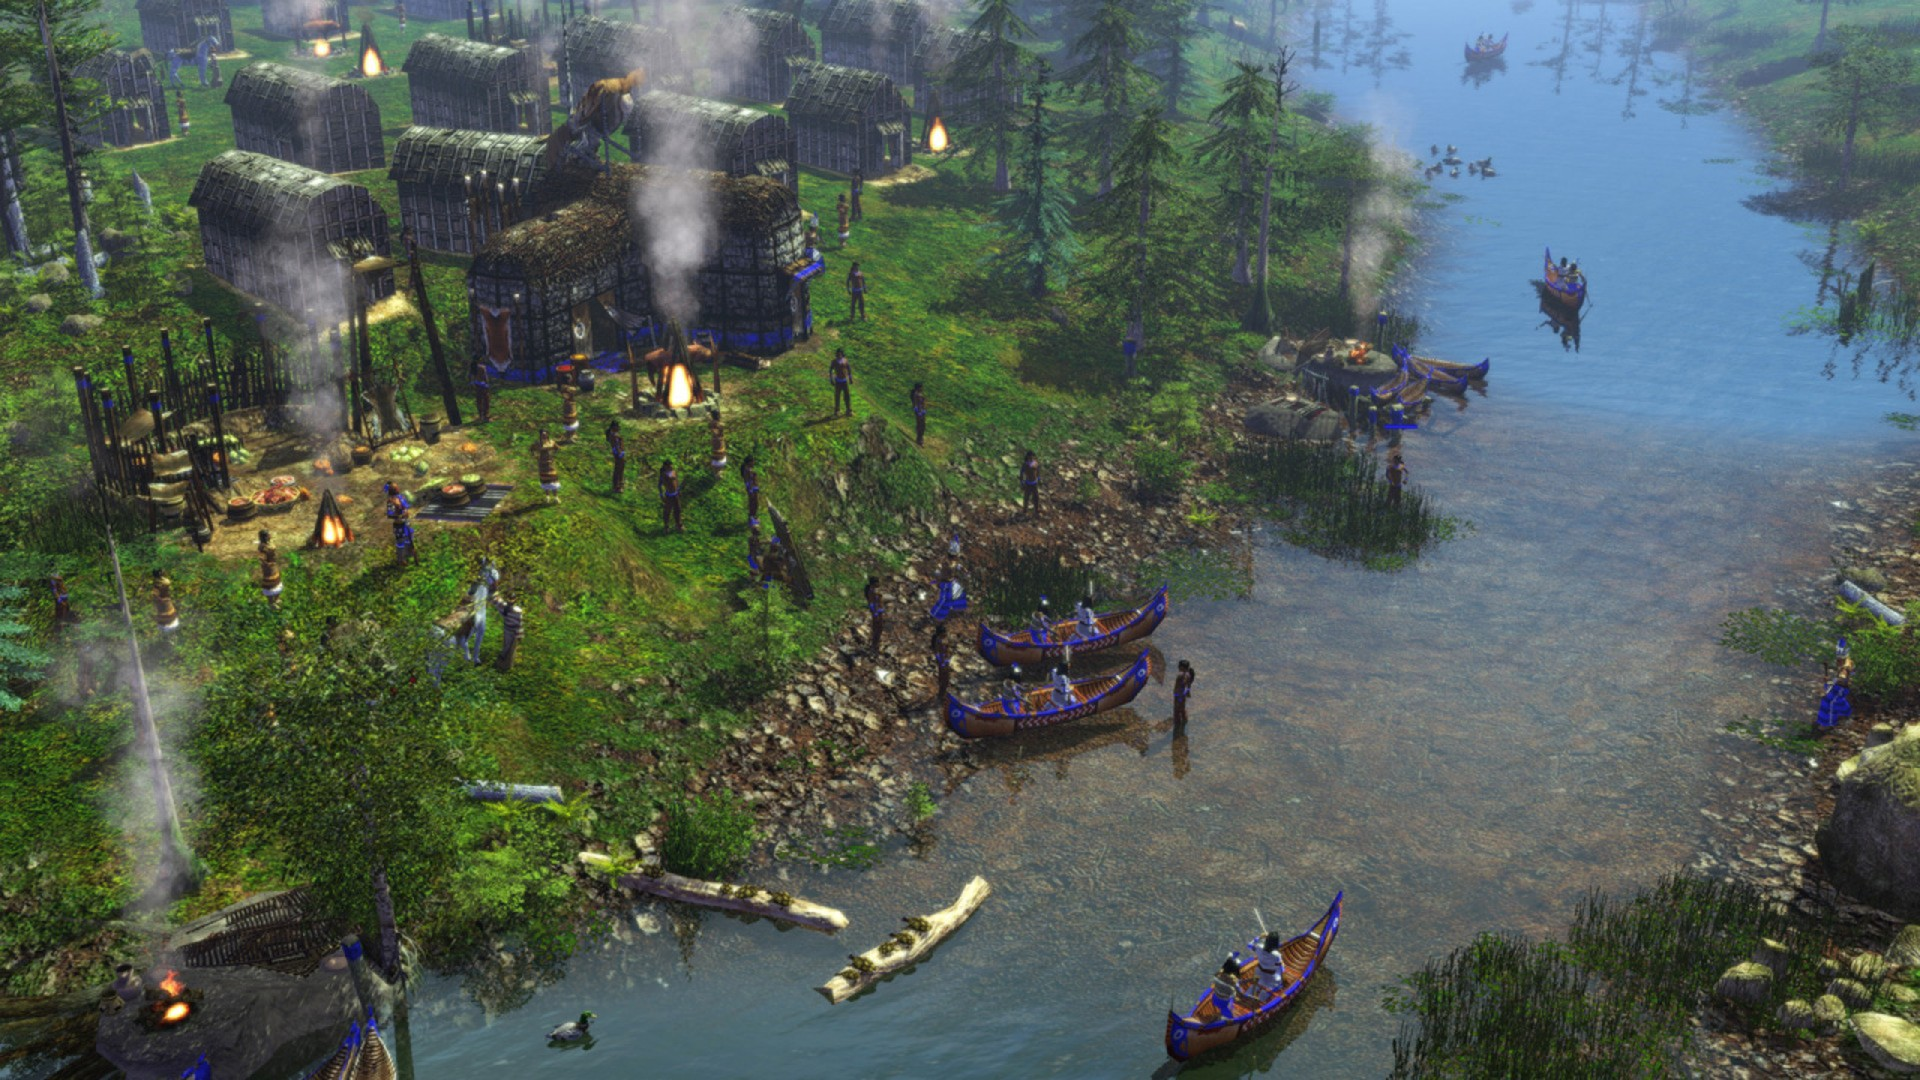 Age of empires 2 hd patch 4 3 download | Age of Empires II HD